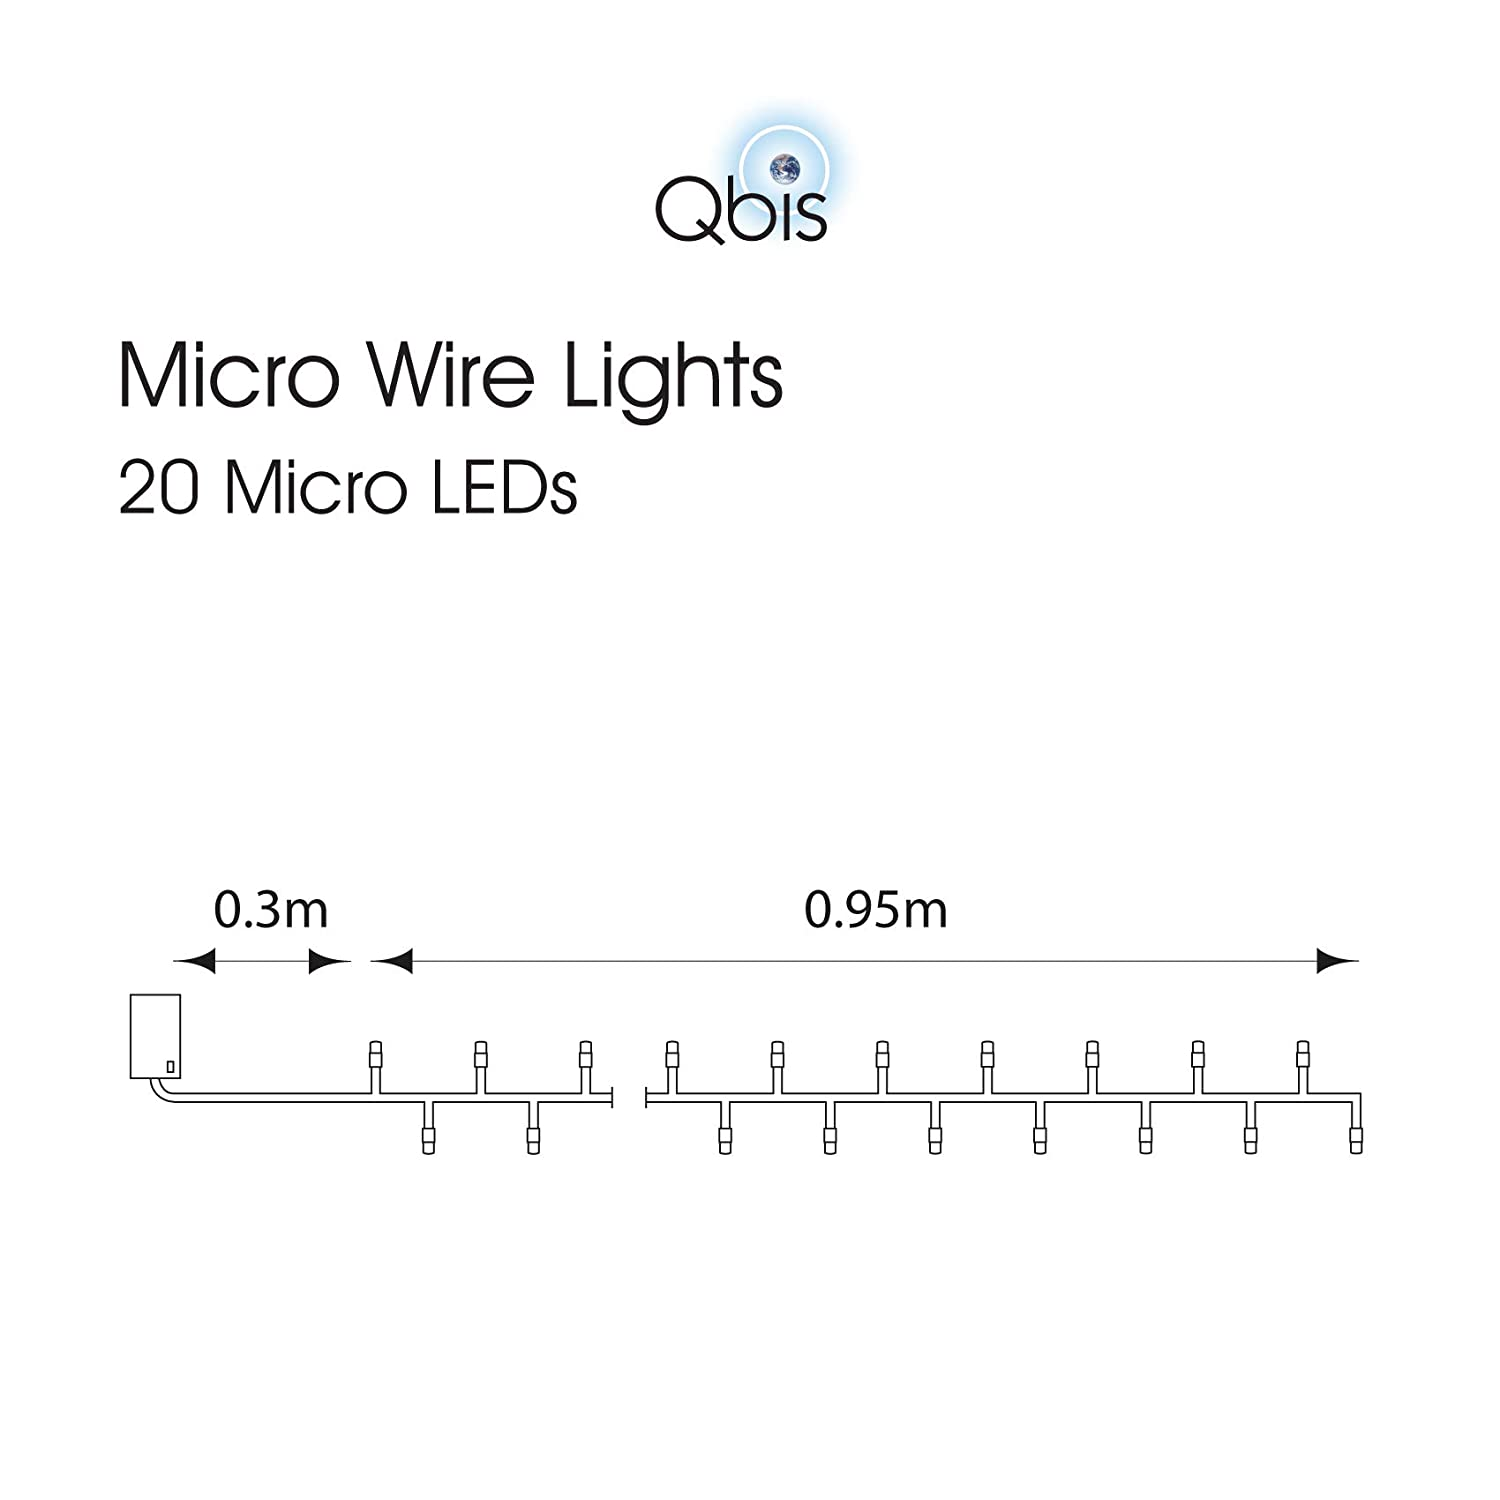 Battery Operated Fairy Lights Micro Warm White Leds Wire Wiring Diagram For Led Wrap Around Light Fixture With Timer Mode By Qbis 20 Lighting